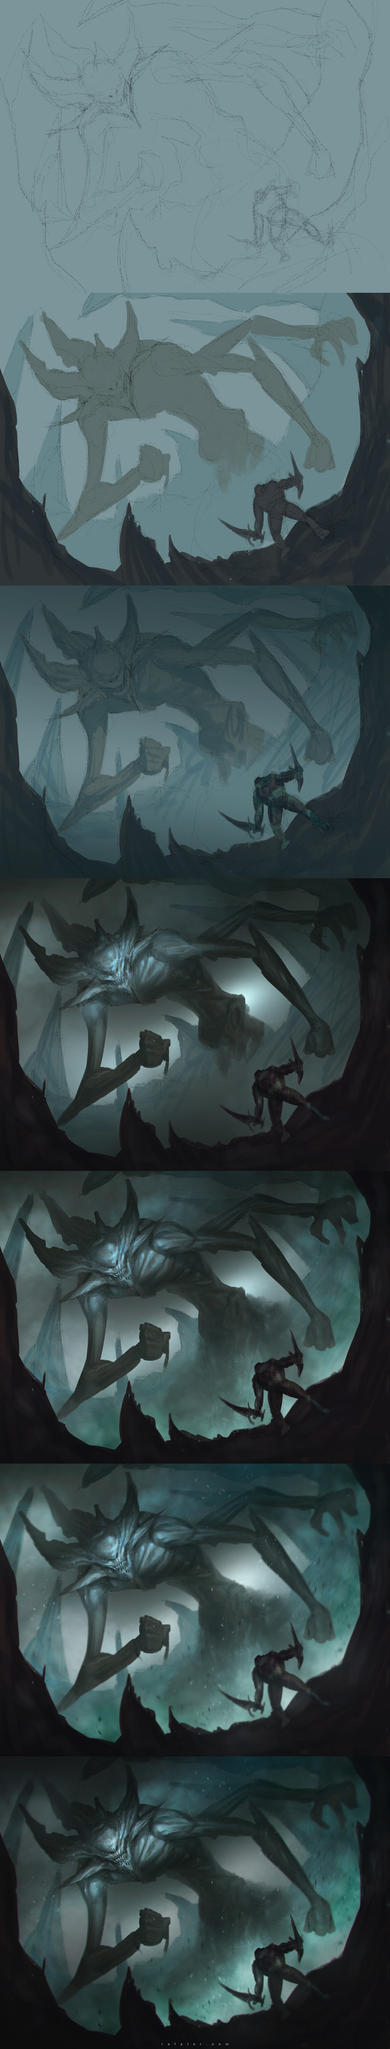 Speedpainting: Fog demon step by step by rafater